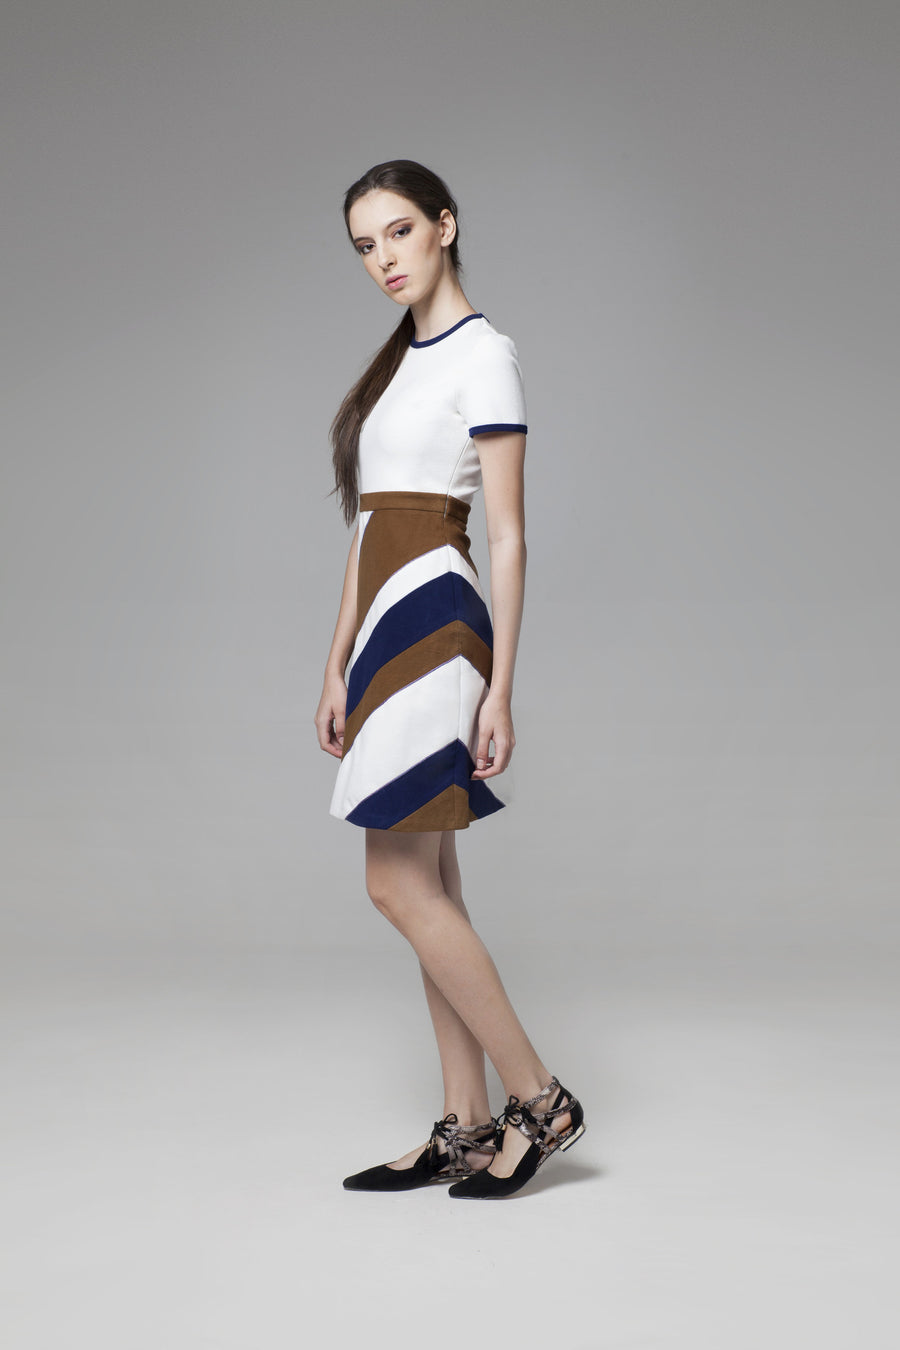 Diagonal Stripes Dress - GlanceZ   - 1